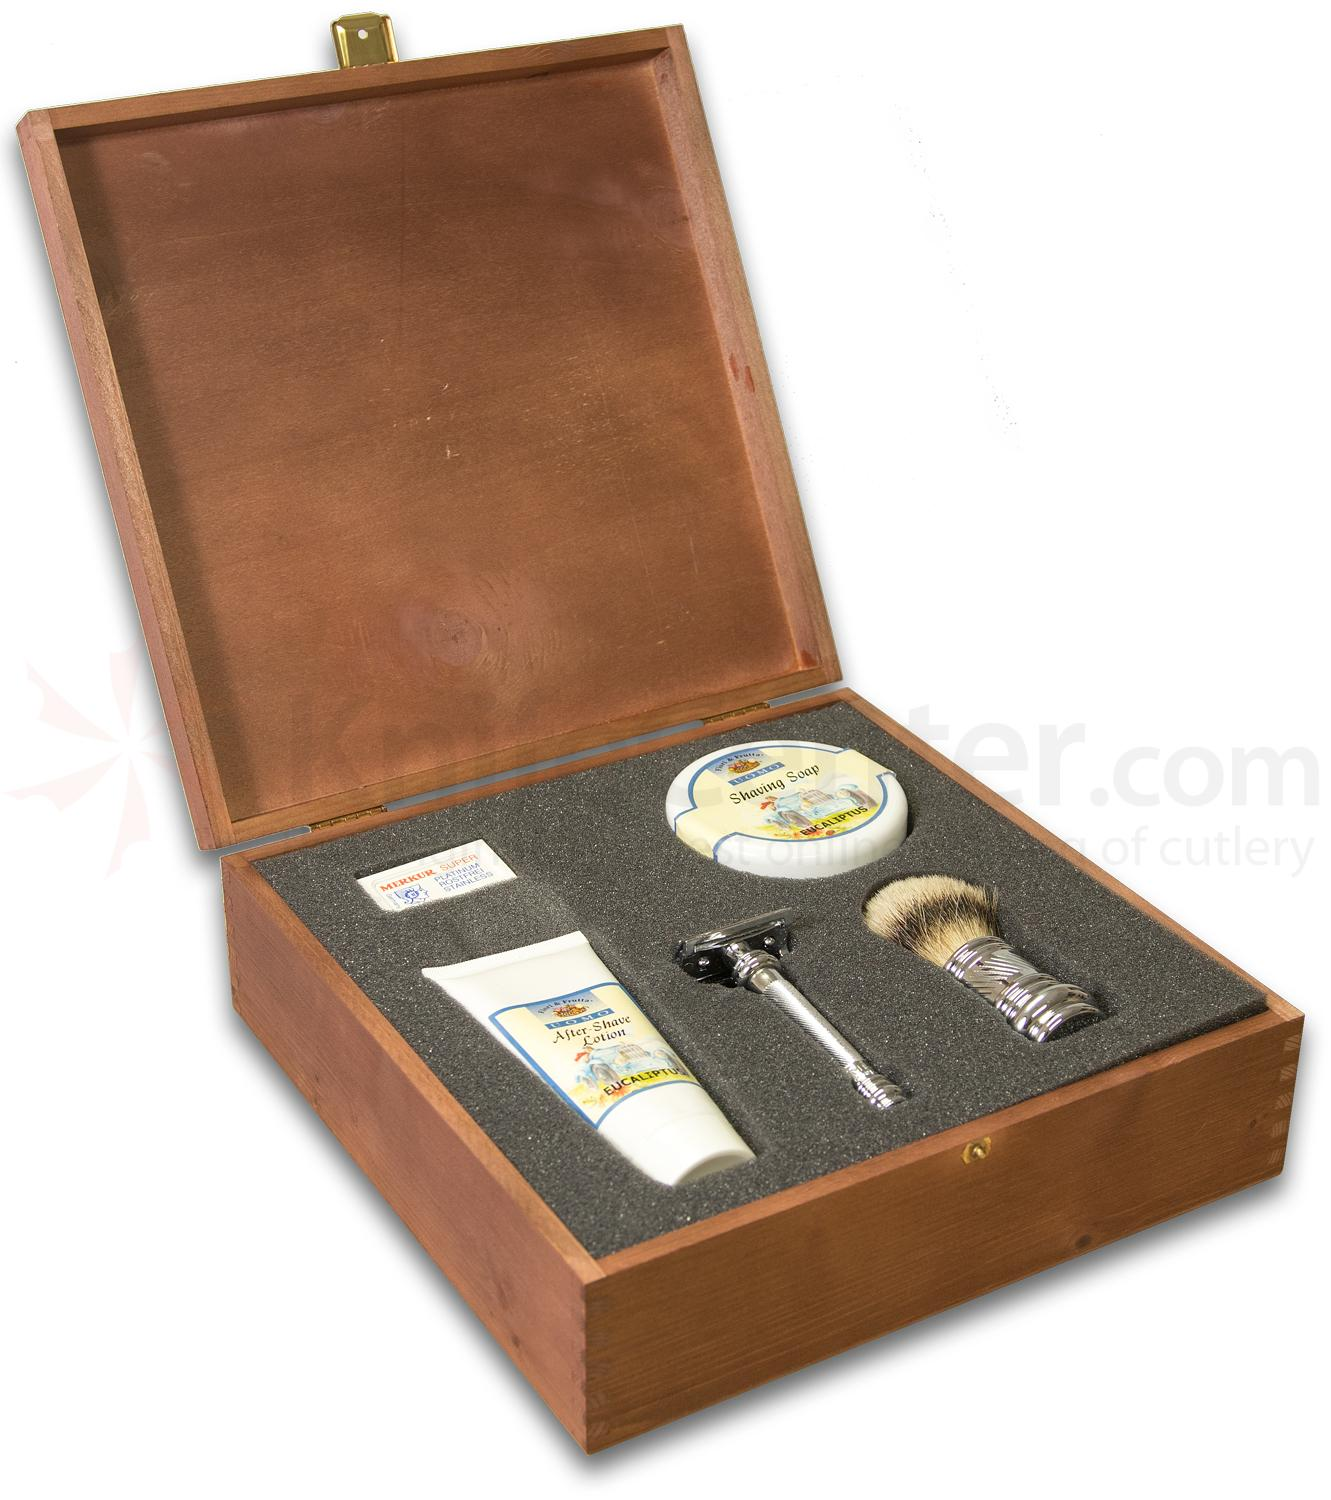 Merkur German Crafted 5 Piece Shaving Gift Set In Wooden Gift Box